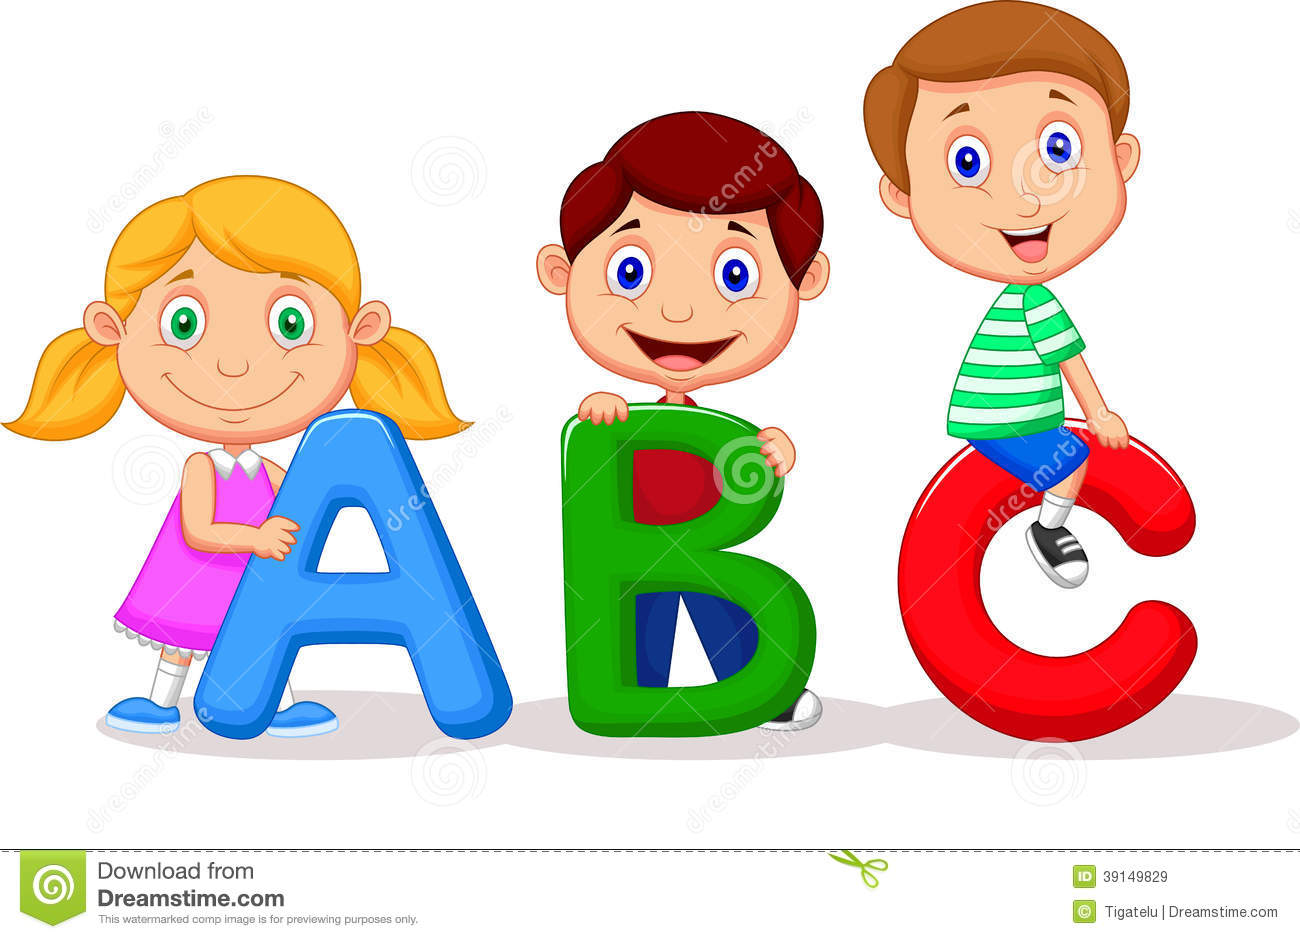 Children Cartoon With ABC Alphabet Stock Vector - Image: 39149829